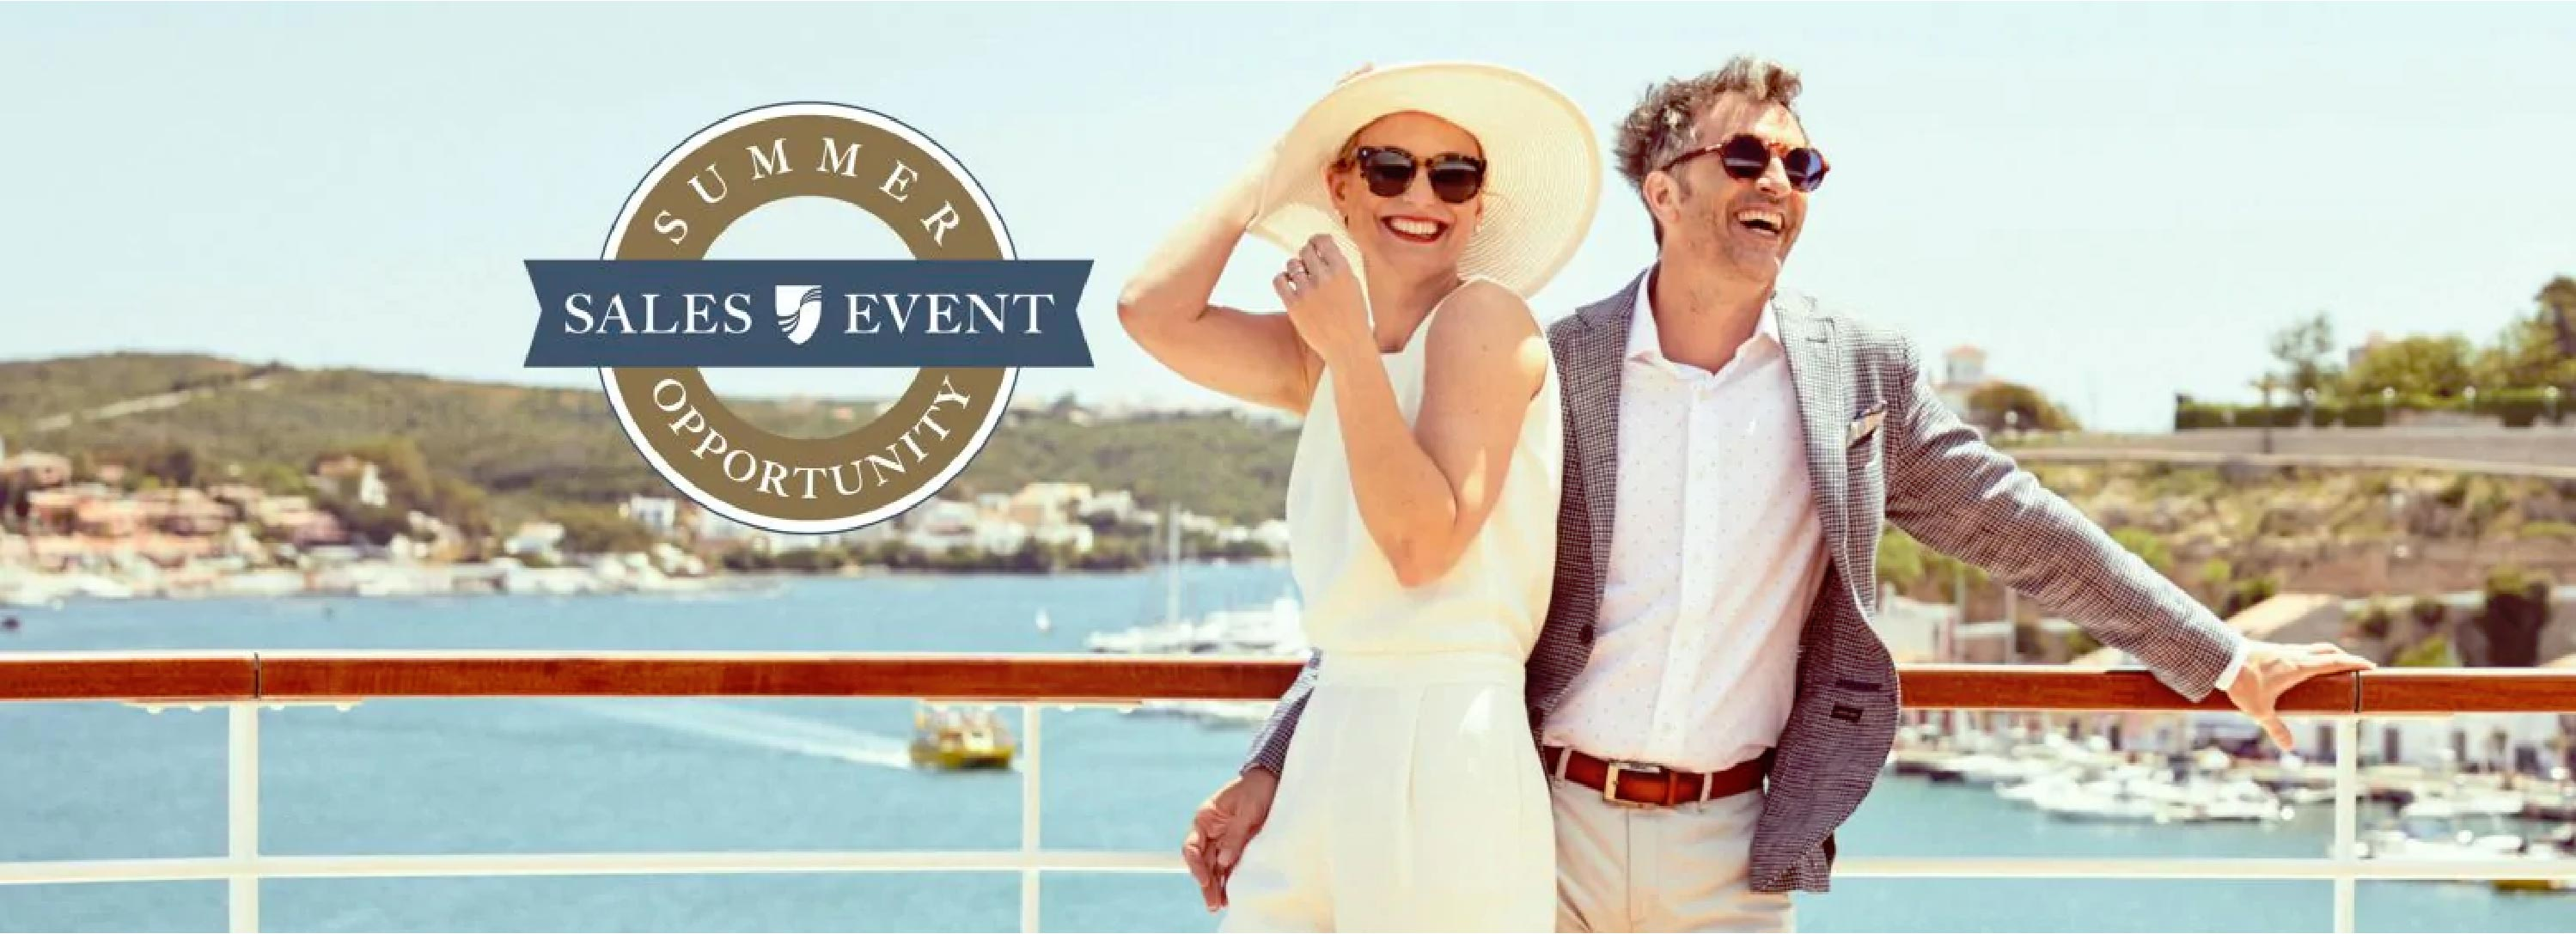 Seabourn Summer Opportunity Sales Event Seabourn Summer